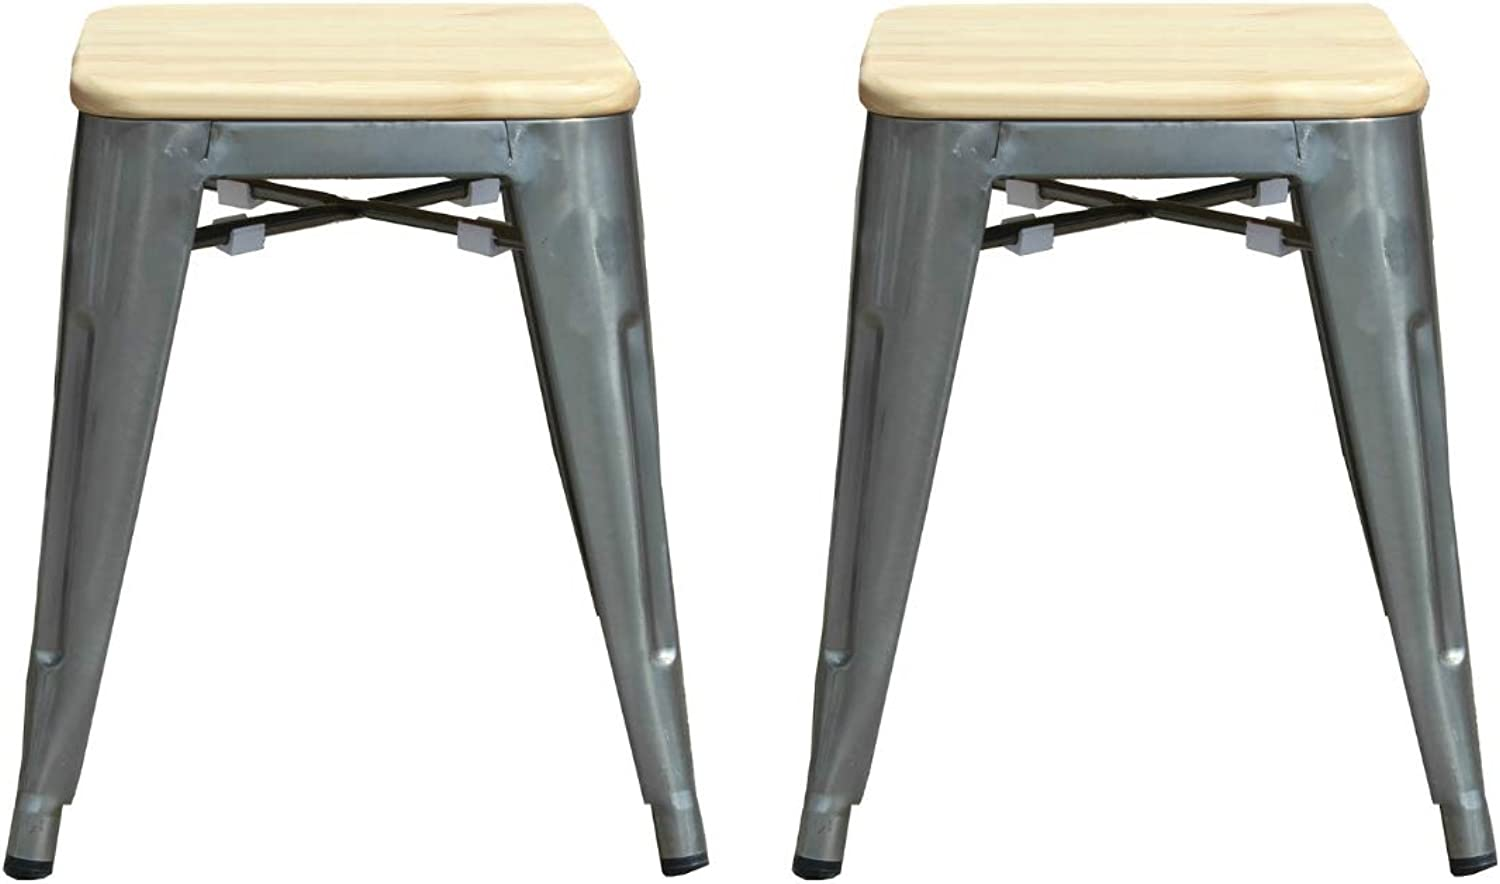 Take Me Home Furniture Mini Tolix Stool Backless Metal, Industrial Style Stool 18  High in Metal with Wood, Industrial Tolix Metal Set of 2, Perfect for Kids